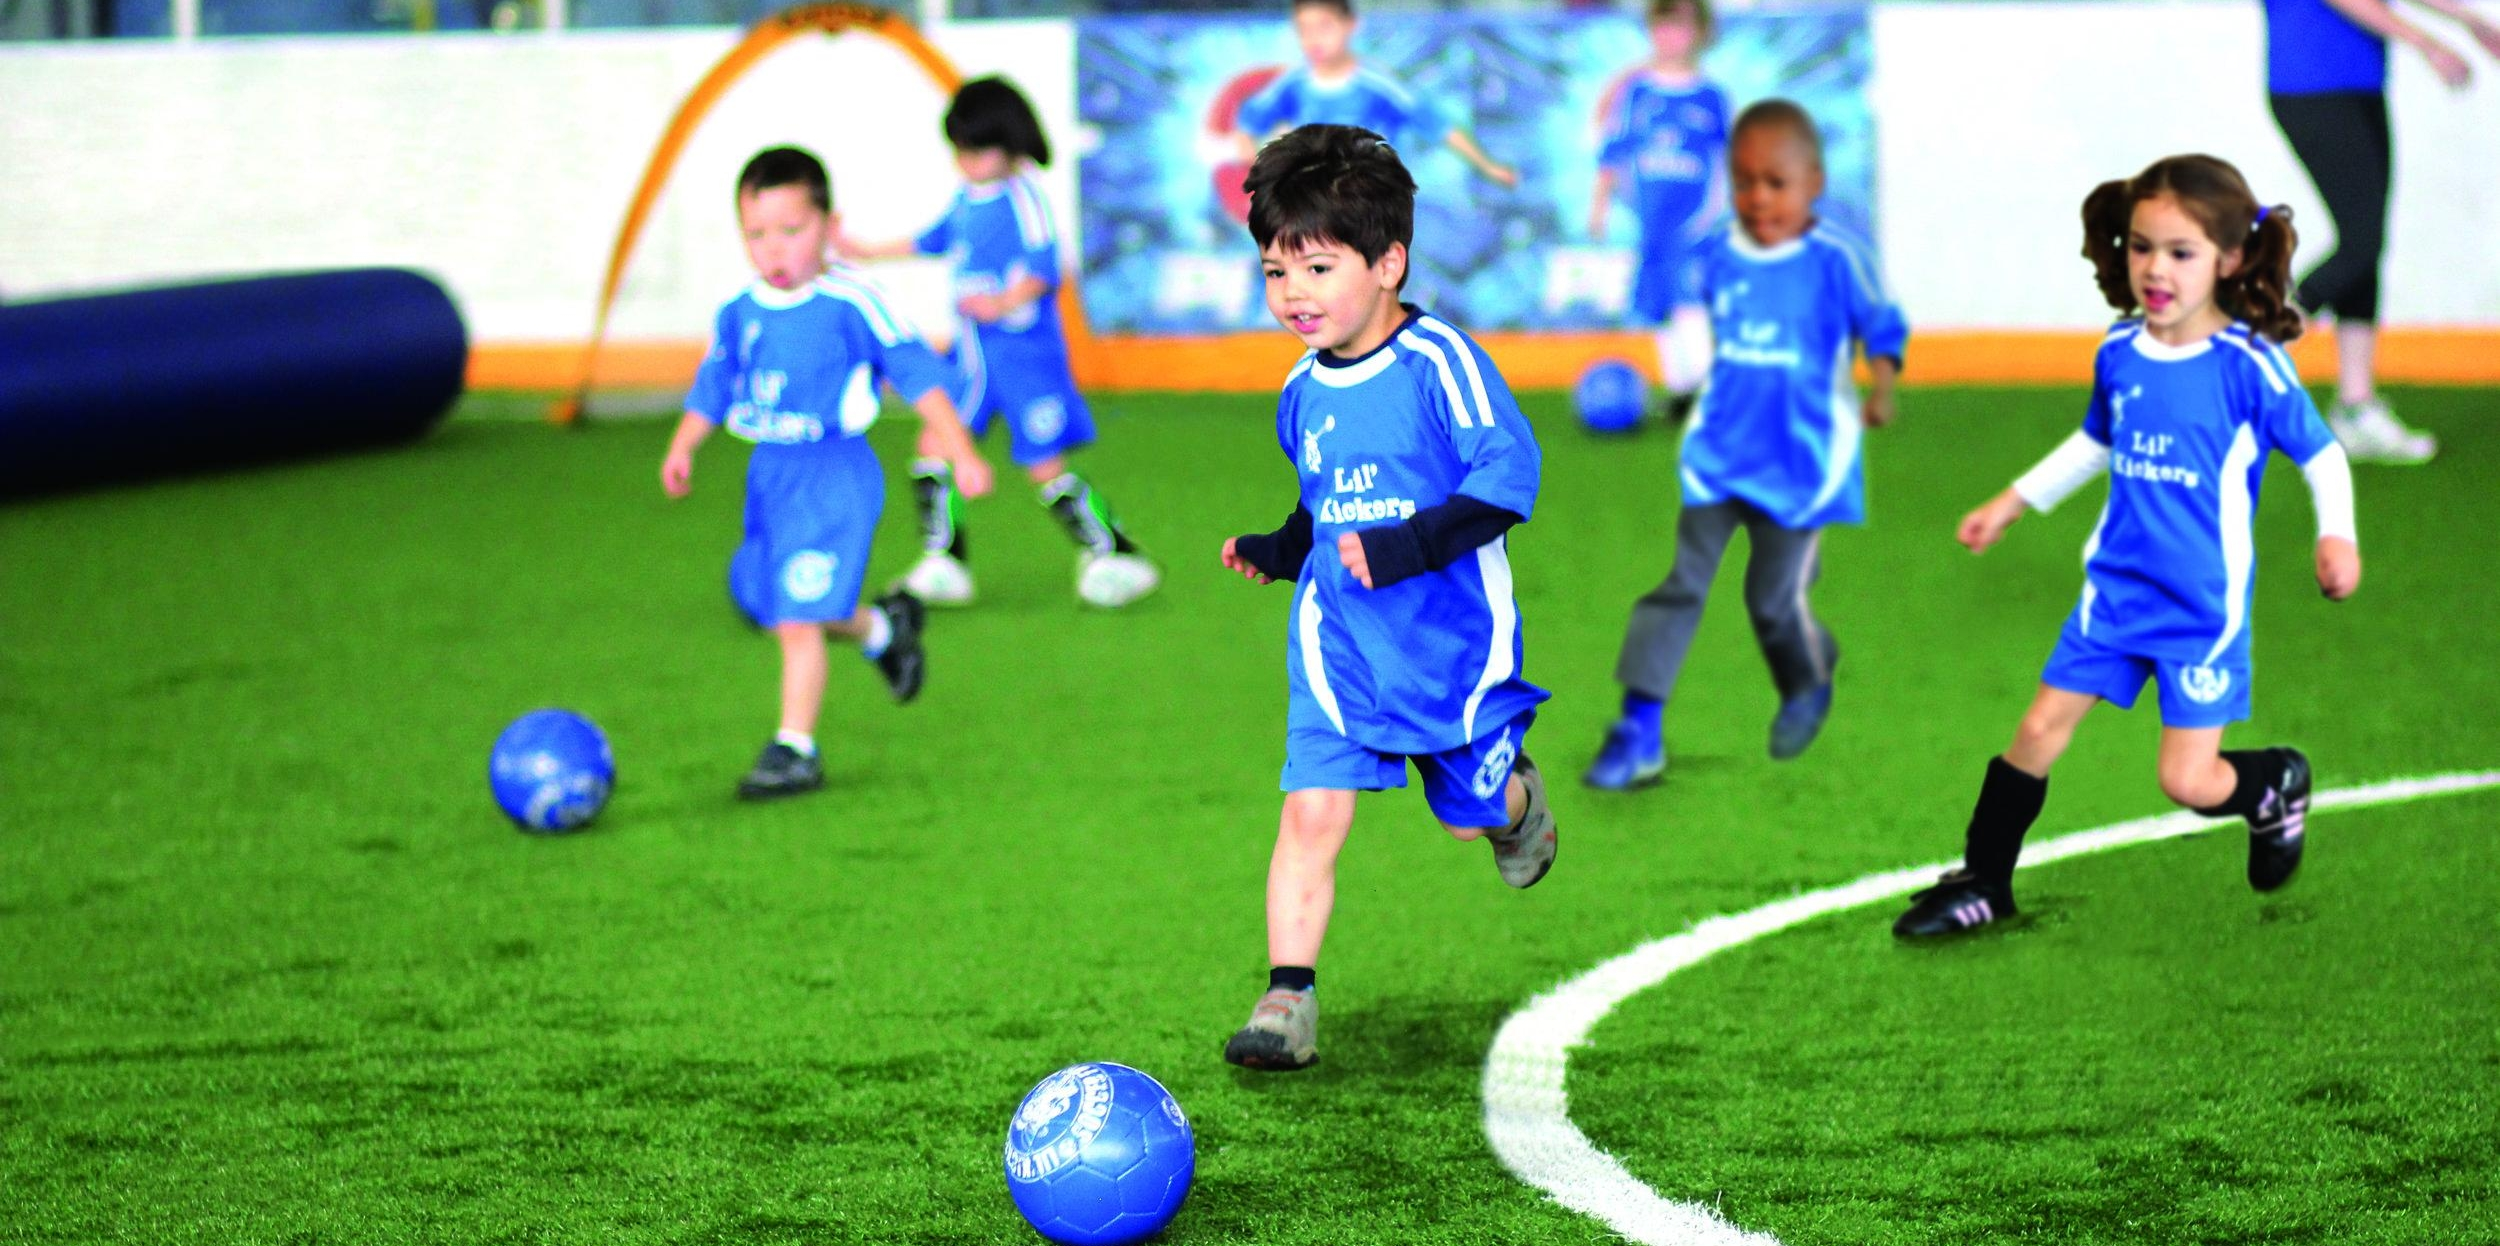 We make soccer thrilling for every child